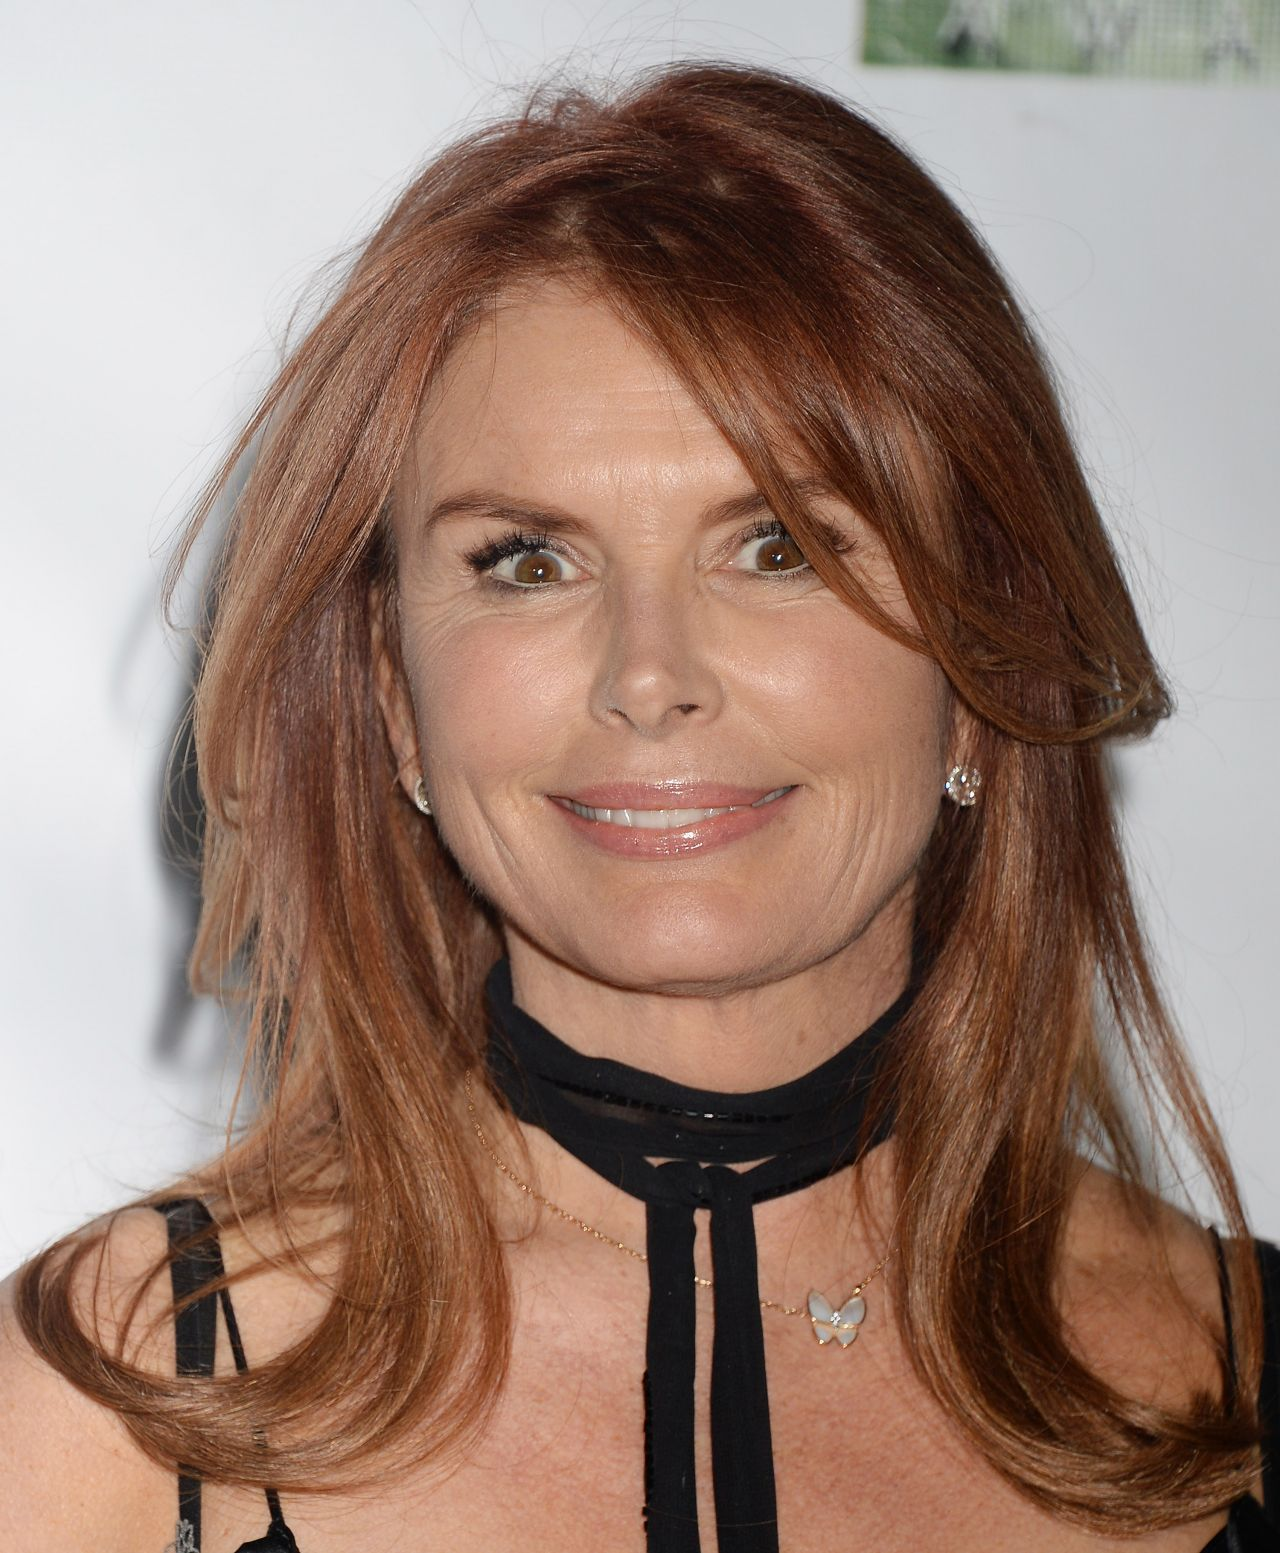 Roma Downey Oscar Wilde Awards In Santa Monica 2 23 2017